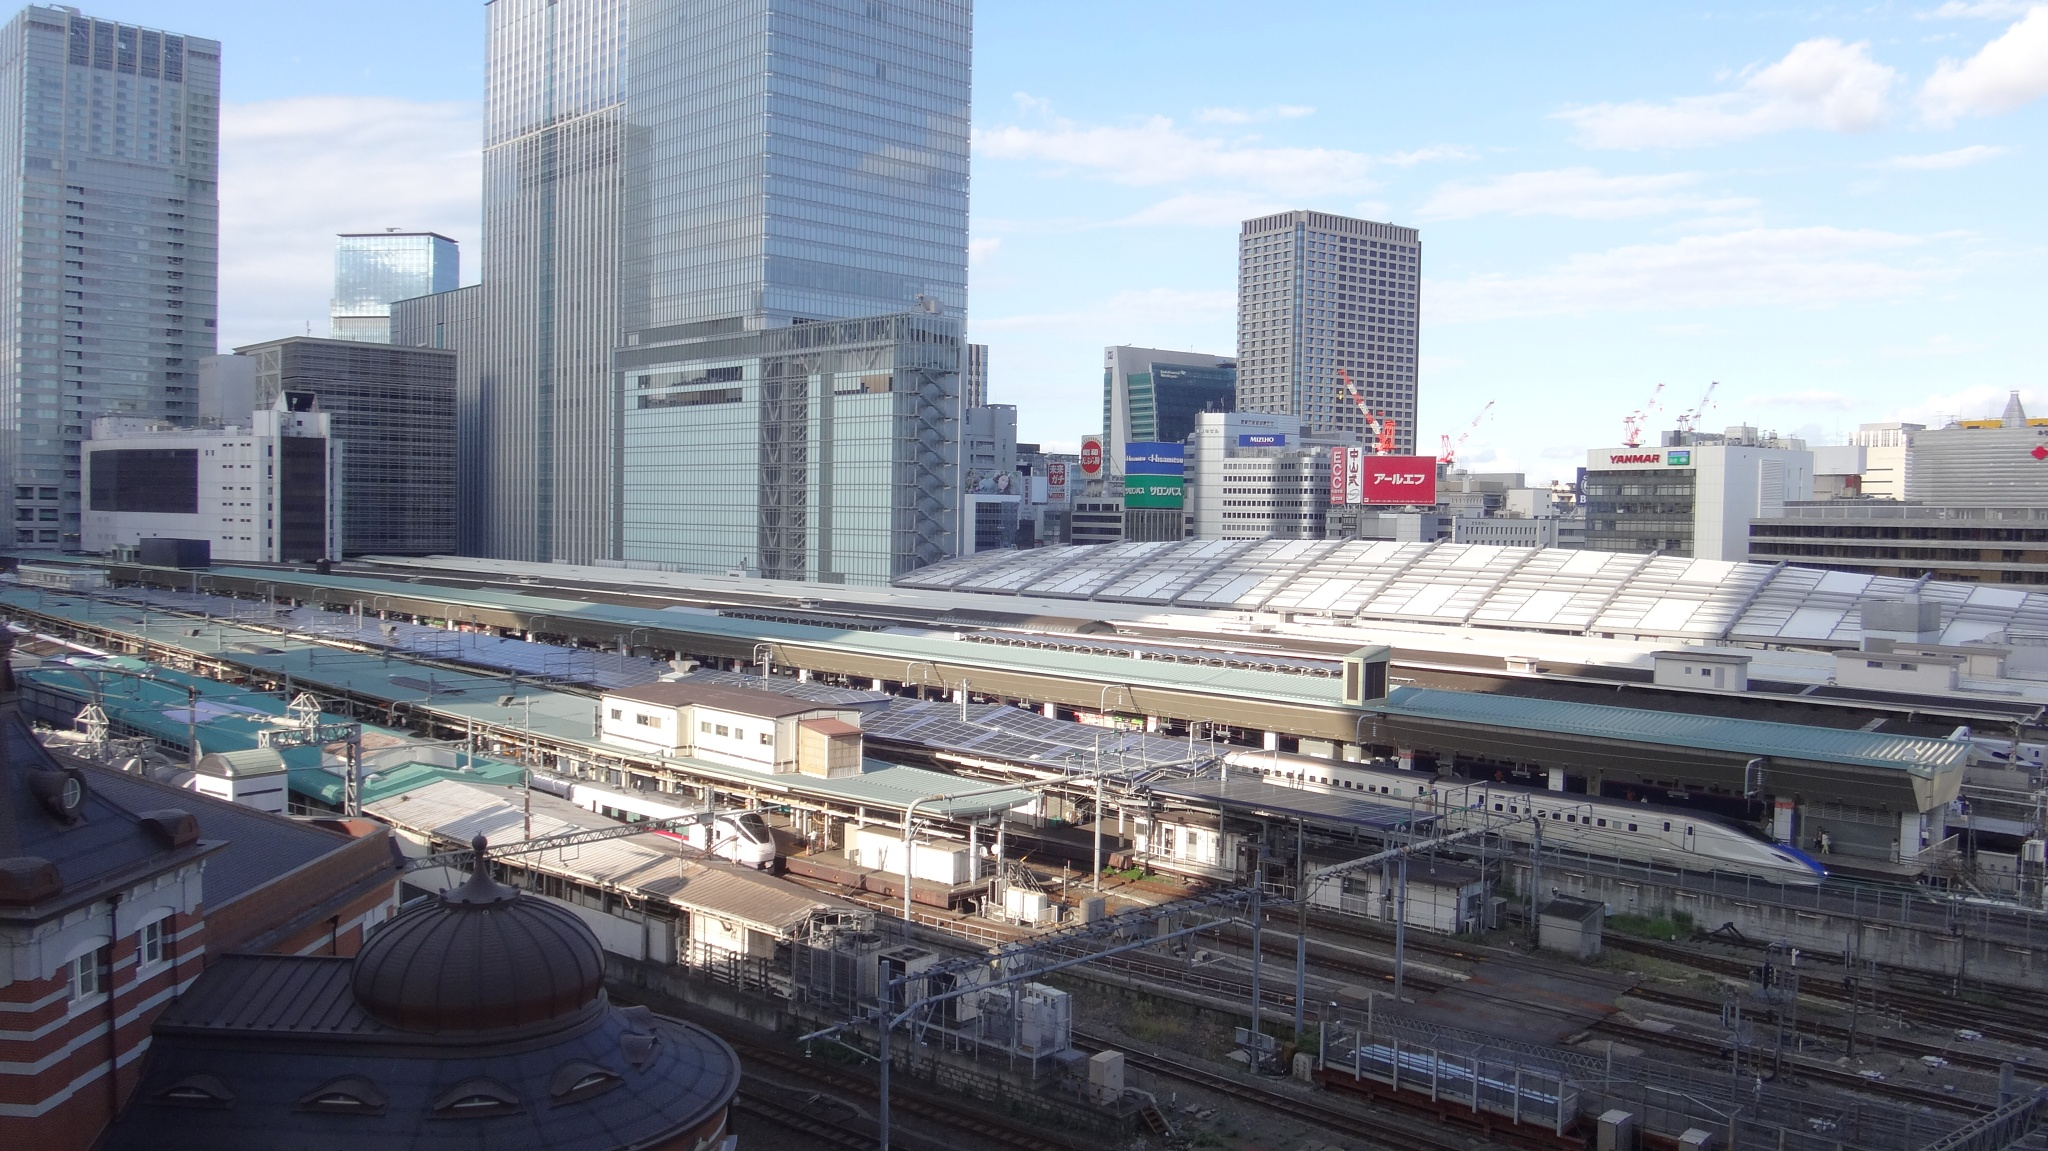 Tokyo Station by guicq